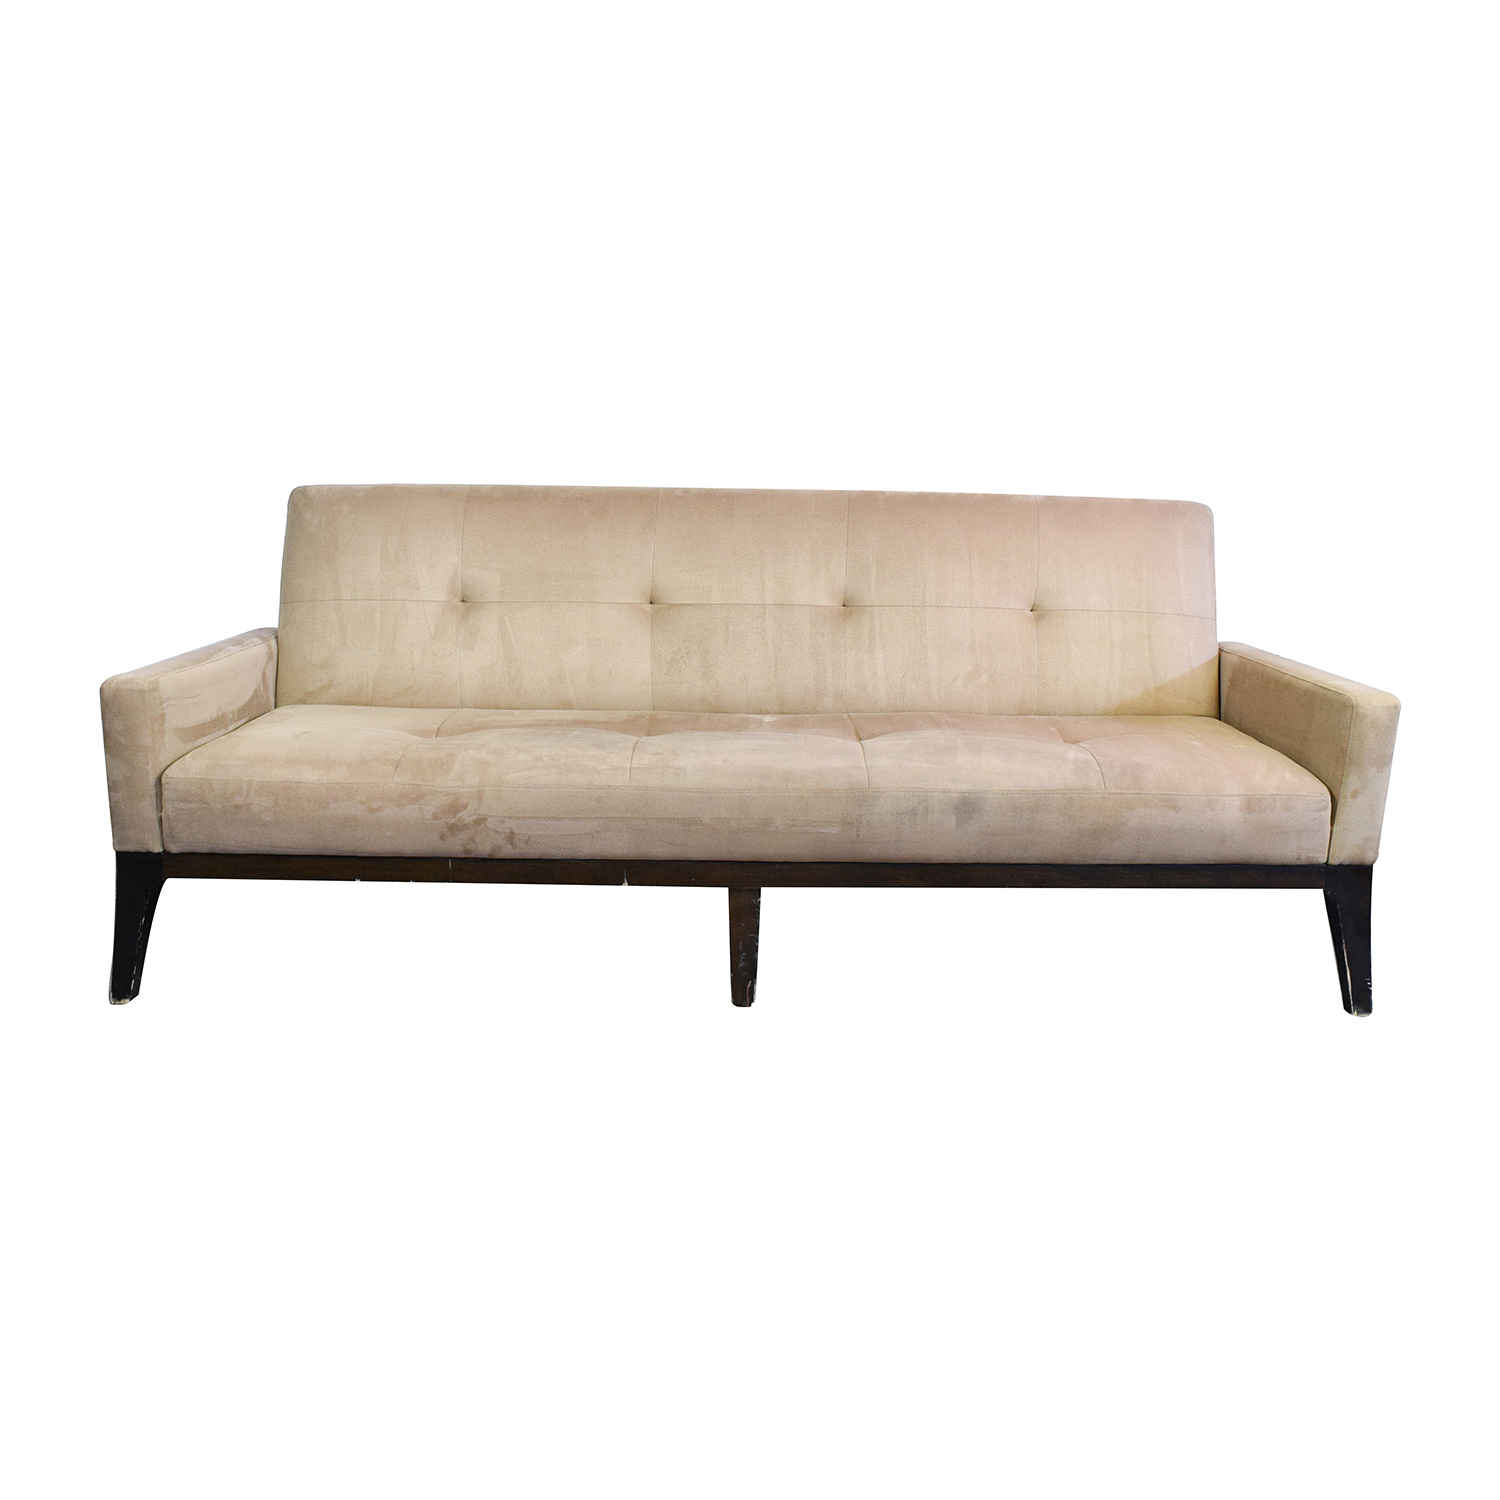 82% off - crate and barrel crate & barrel beige tufted futon sofa